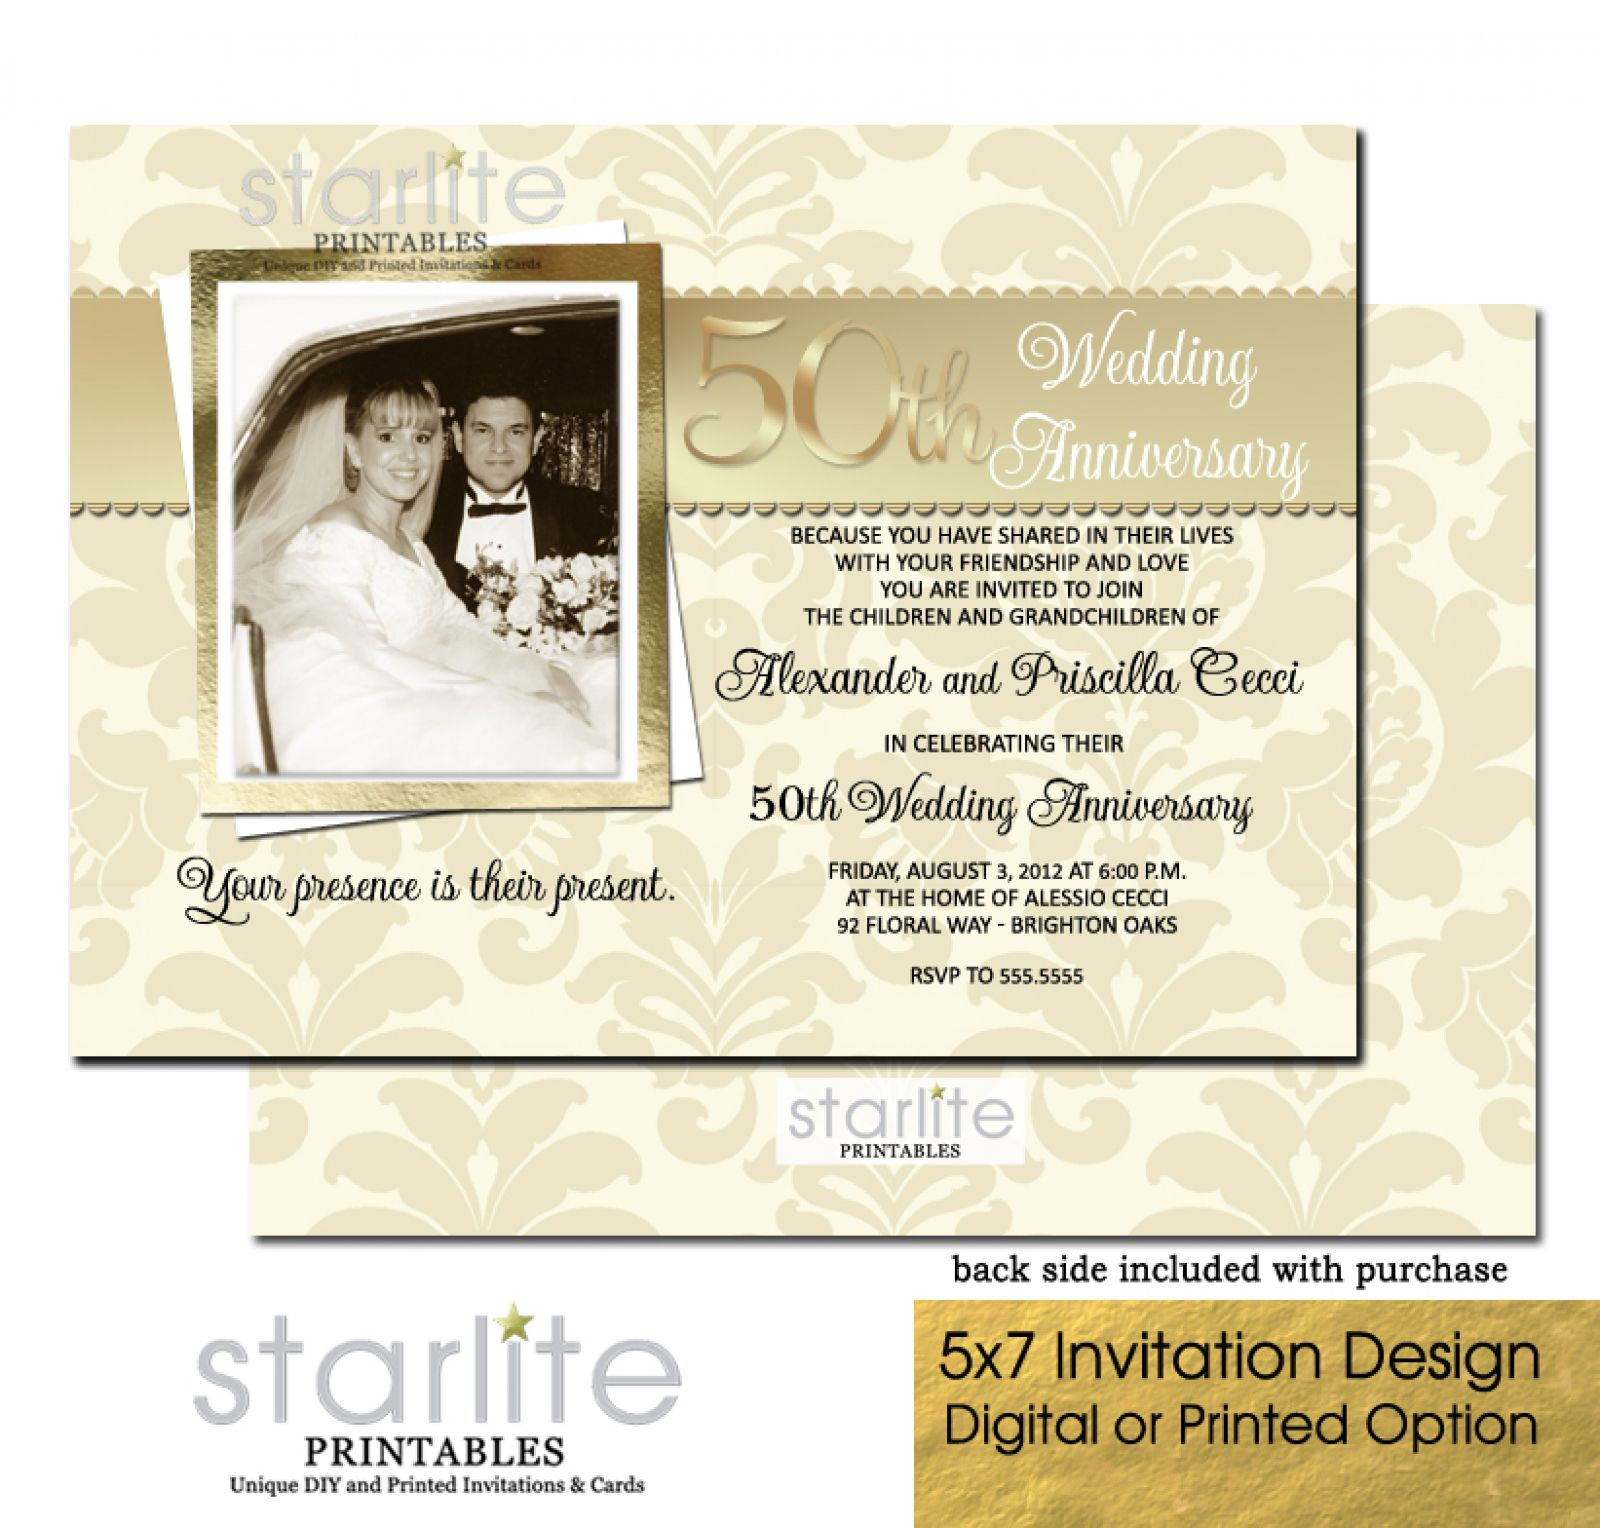 007 Top 50th Anniversary Invitation Design Image  Designs Wedding Template Microsoft Word Surprise Party Wording Card IdeaFull